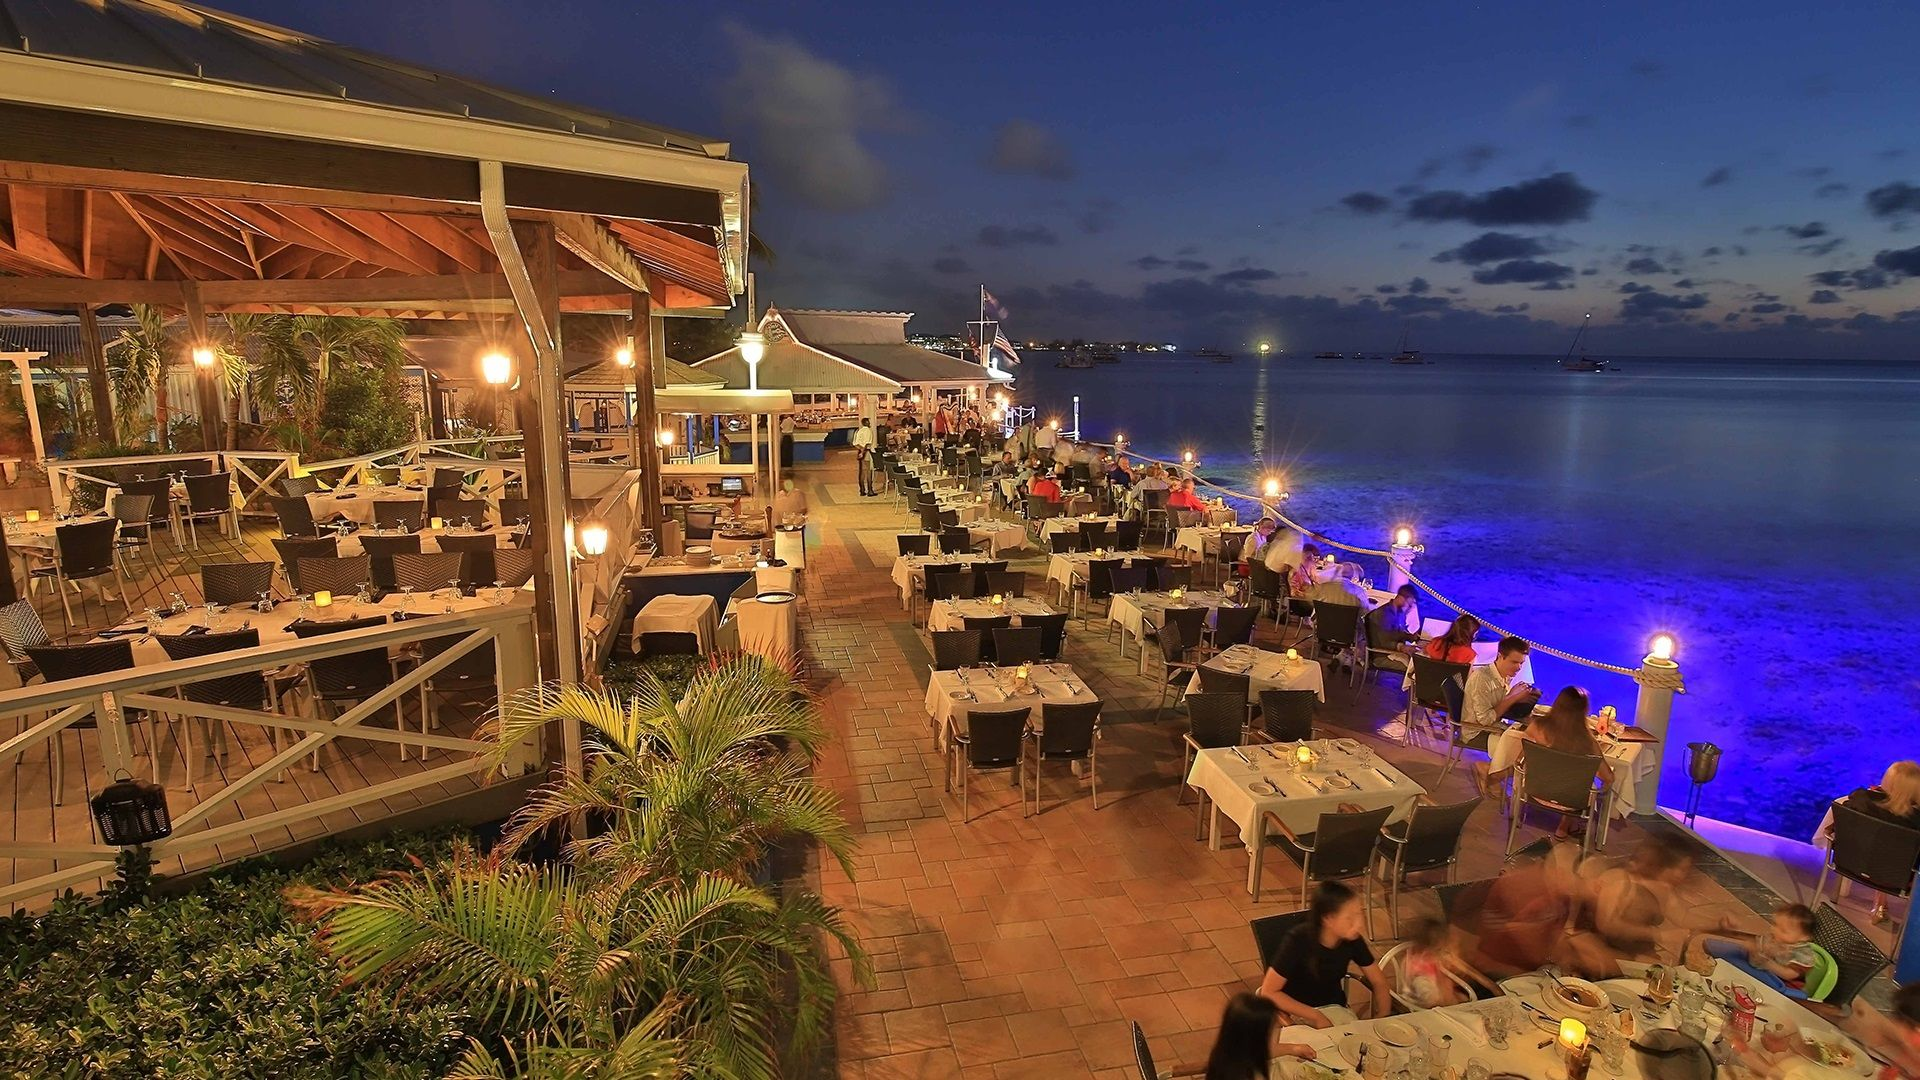 Experience Fine Dining In Cayman Islands At One Of The Most Celebrated Restaurants In Grand Cayman The Cayman Islands Resorts Grand Cayman Island Grand Cayman